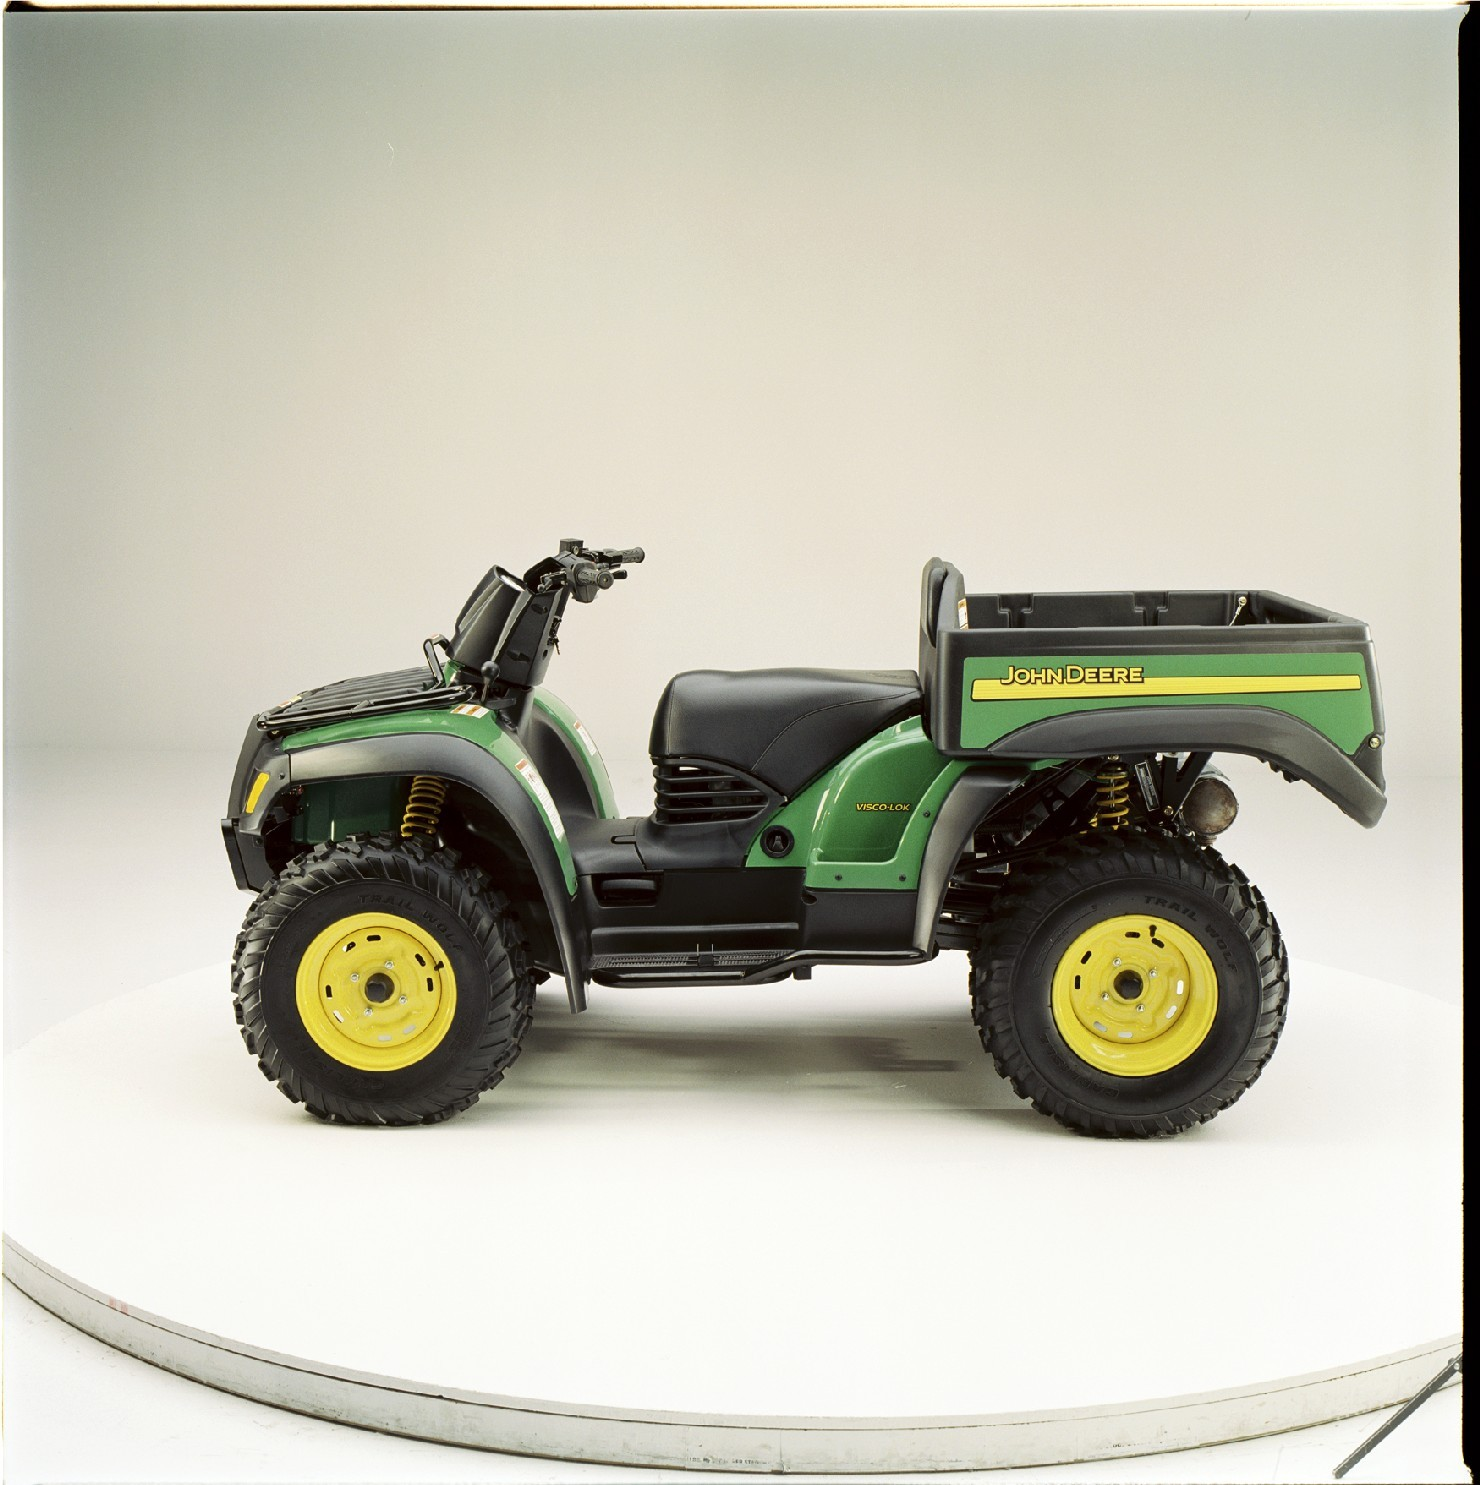 cpsc bombardier recreational products inc and deere company announce recall of atvs. Black Bedroom Furniture Sets. Home Design Ideas